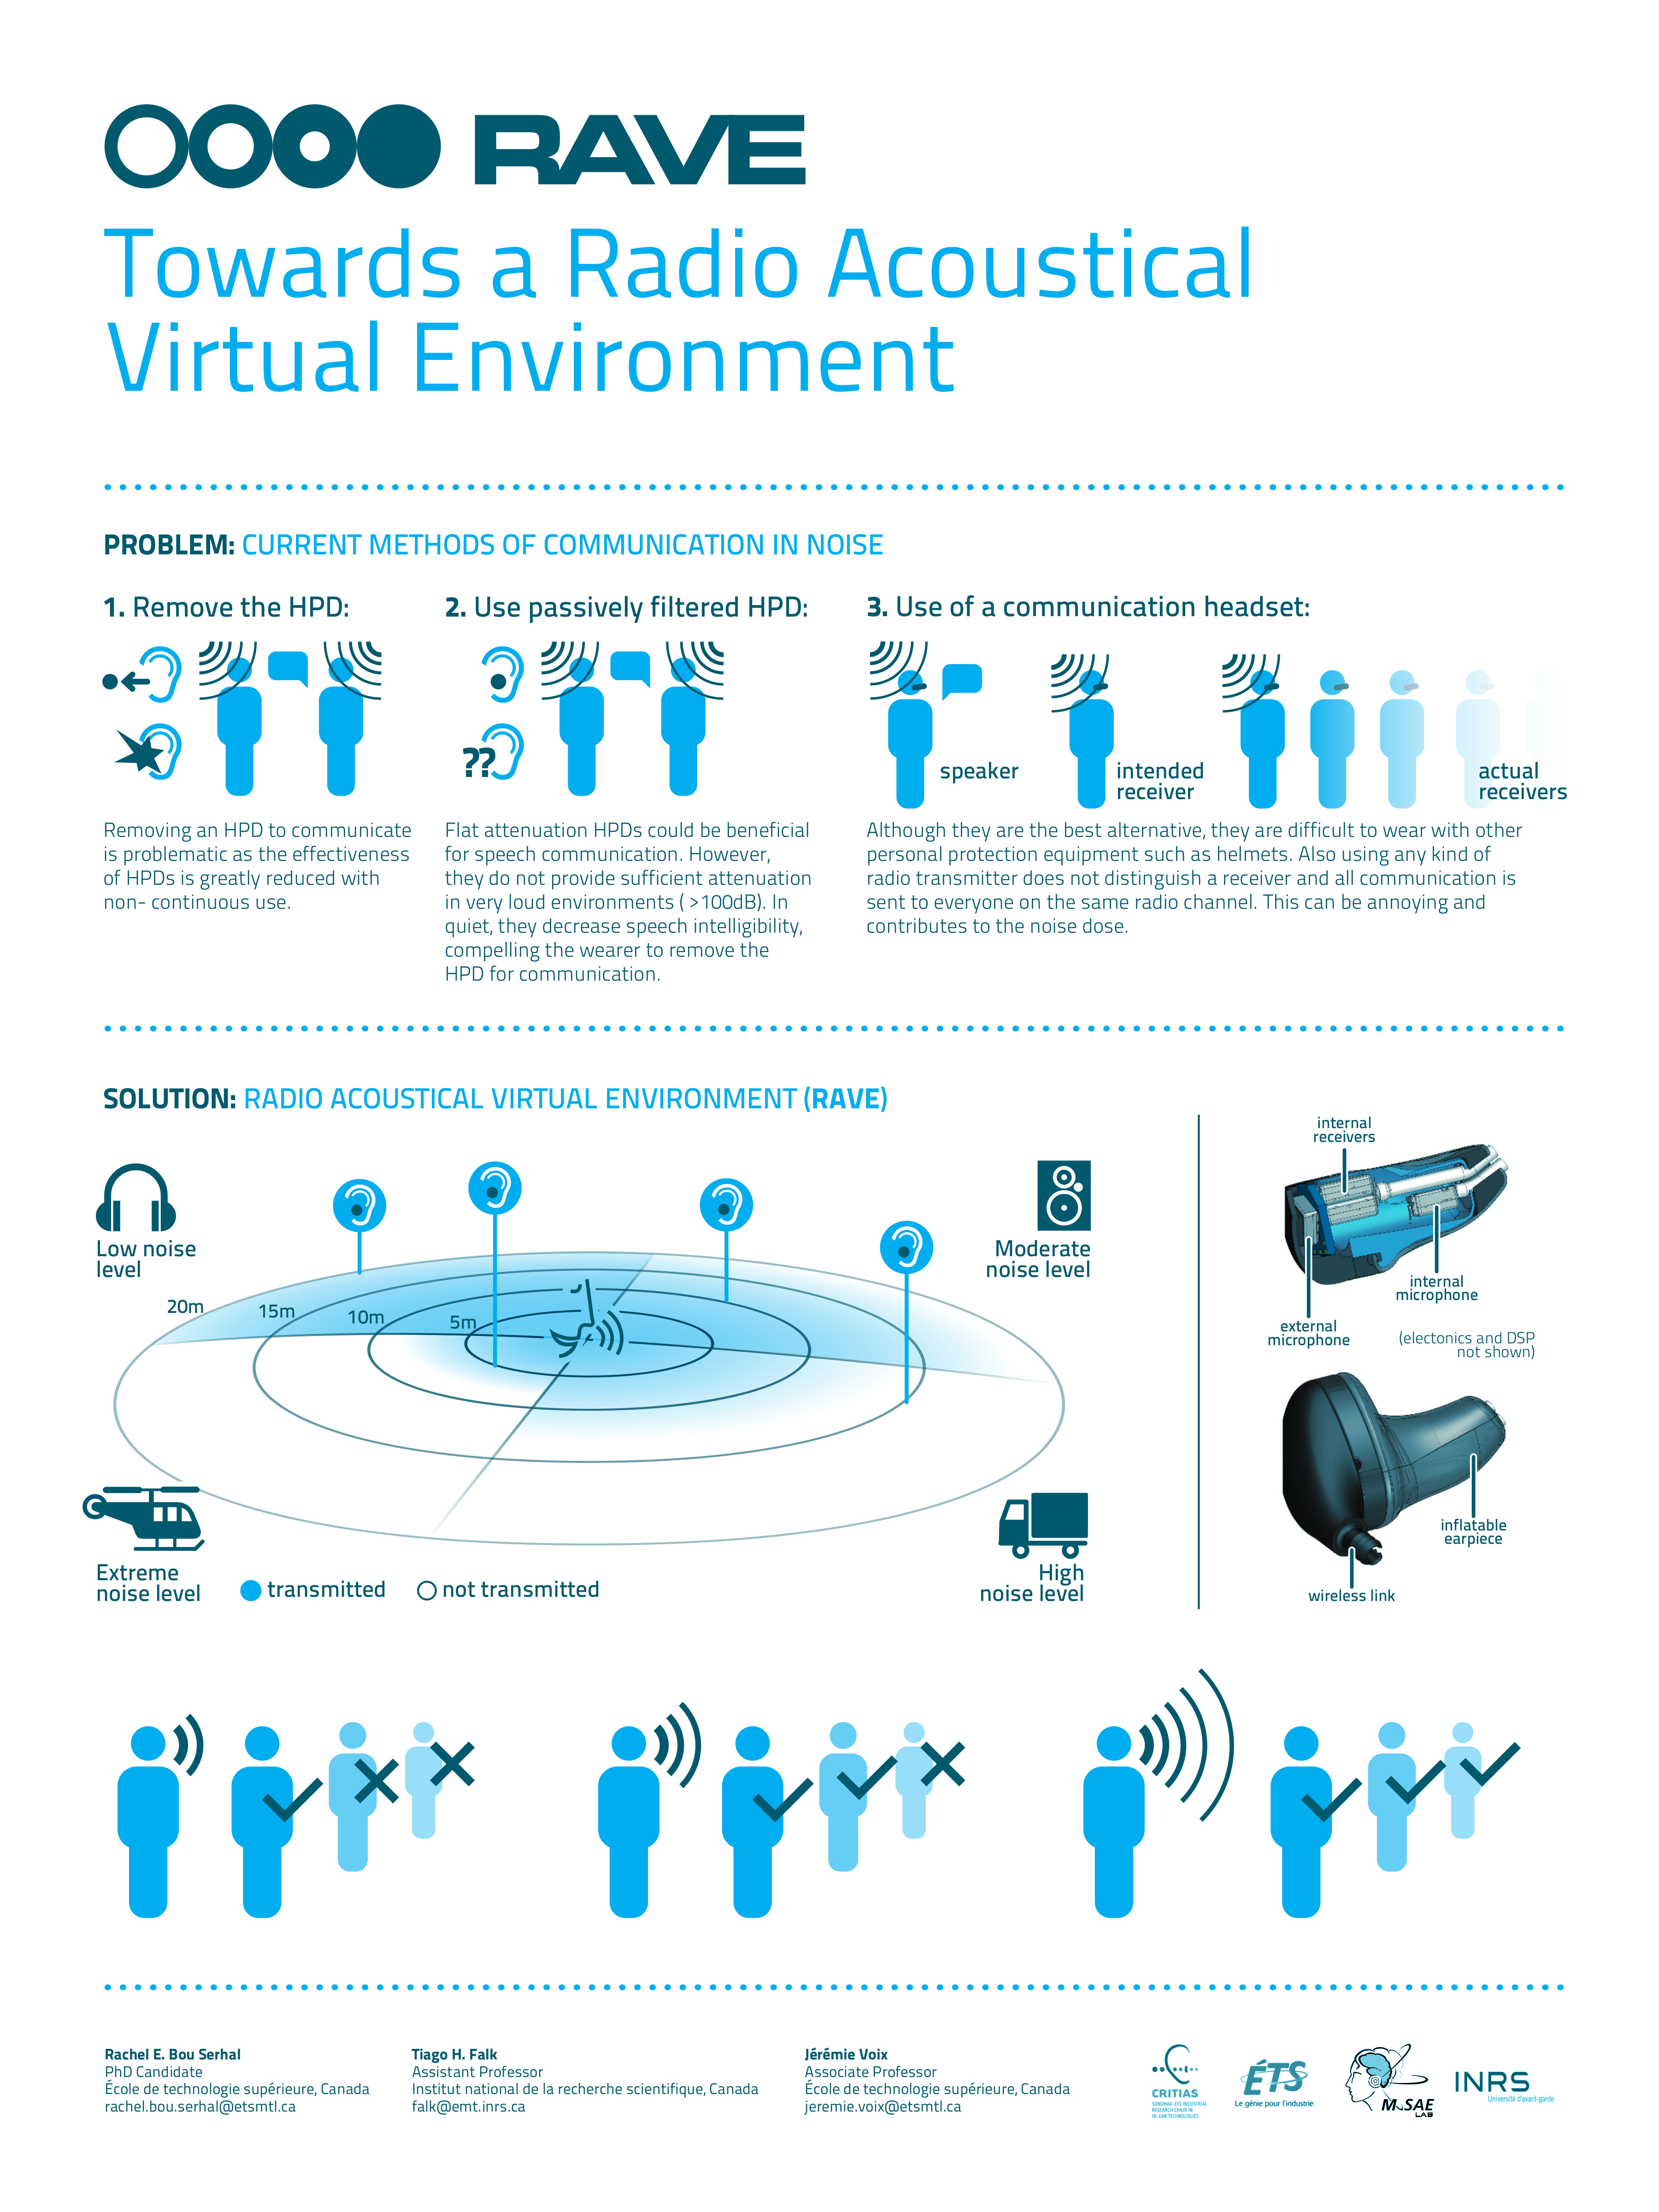 Bou Serhal et al. - 2014 - Towards a Radio Acoustical Virtual Environment